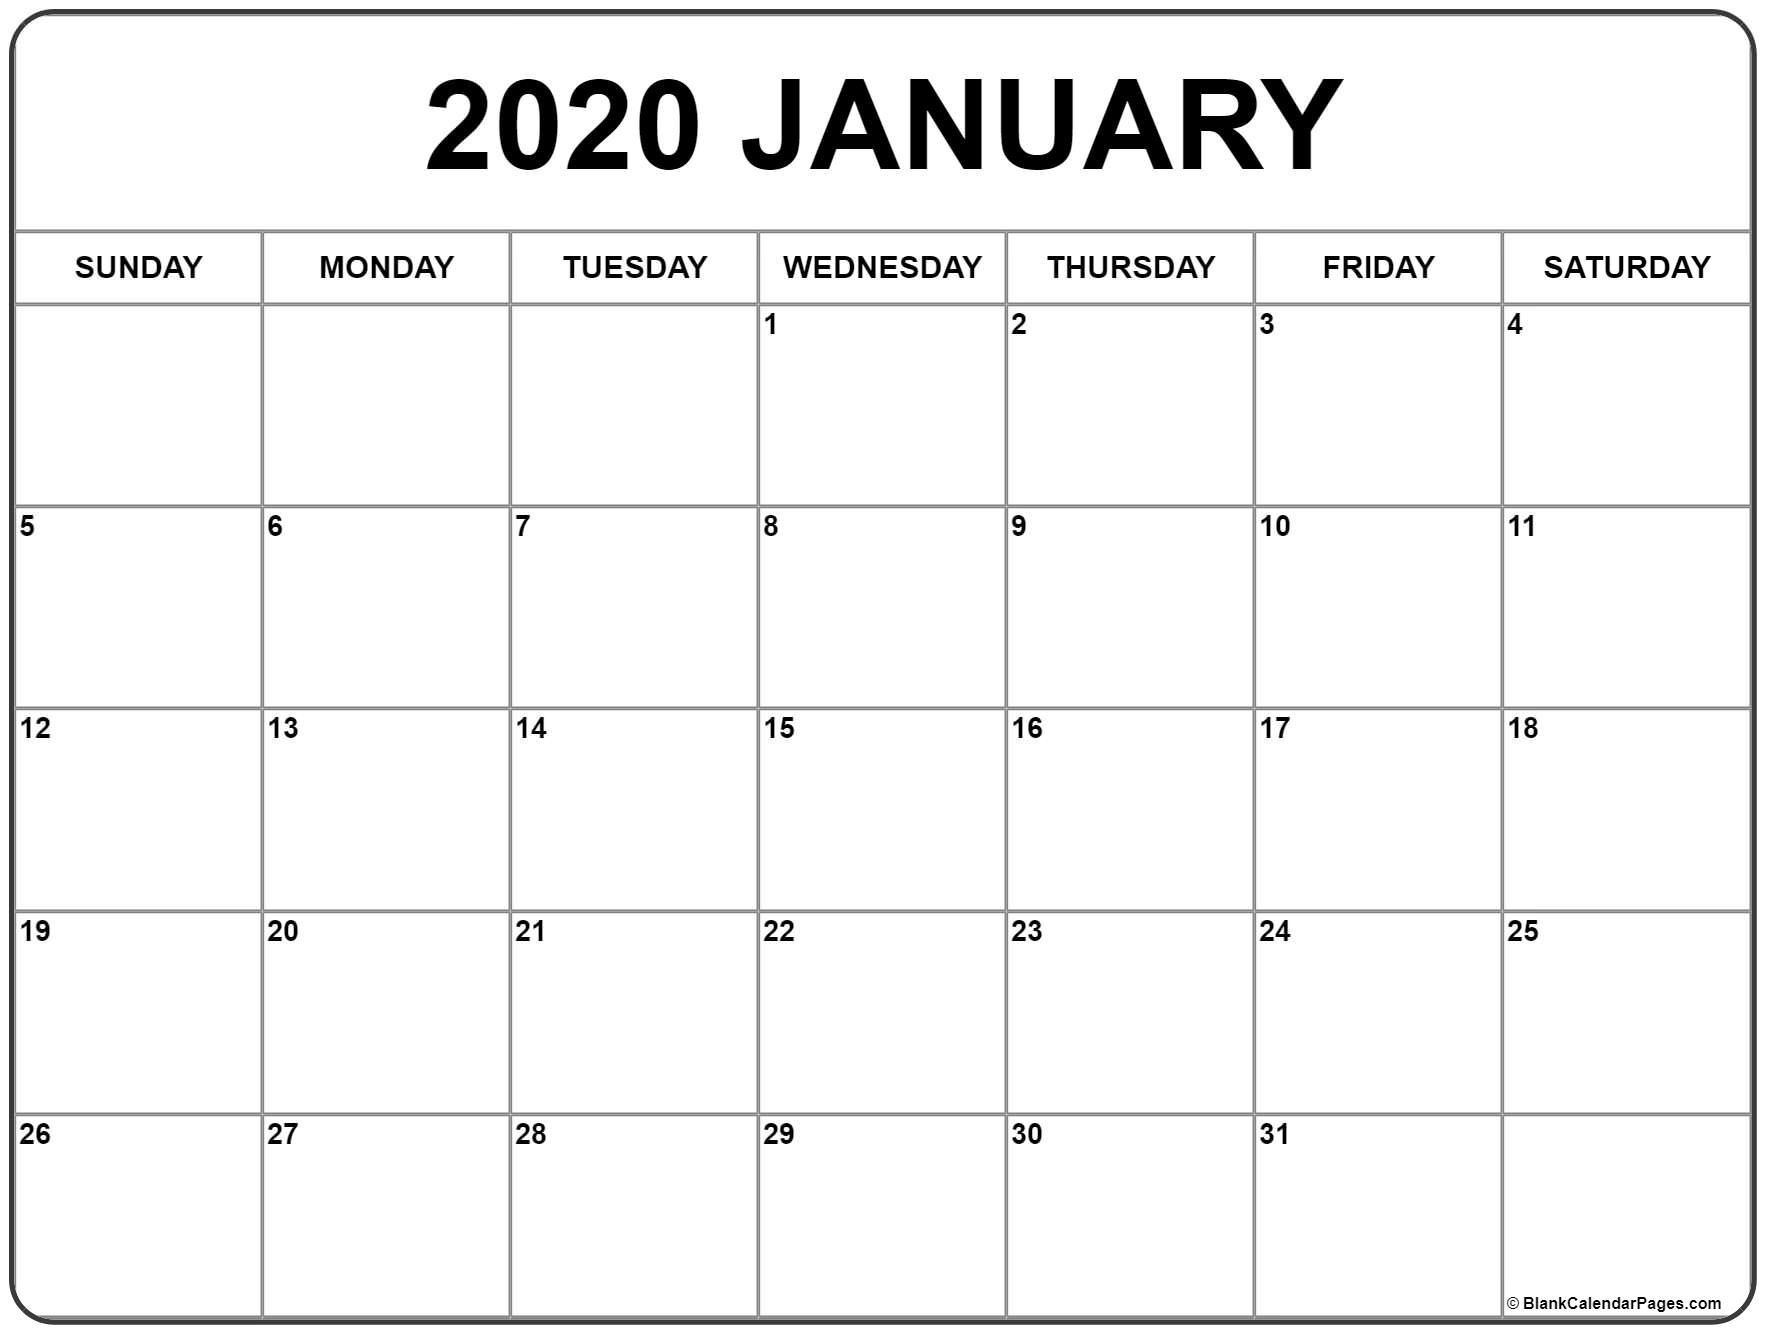 January 2020 Calendar | Free Printable Monthly Calendars-January 2020 Calendar Nz